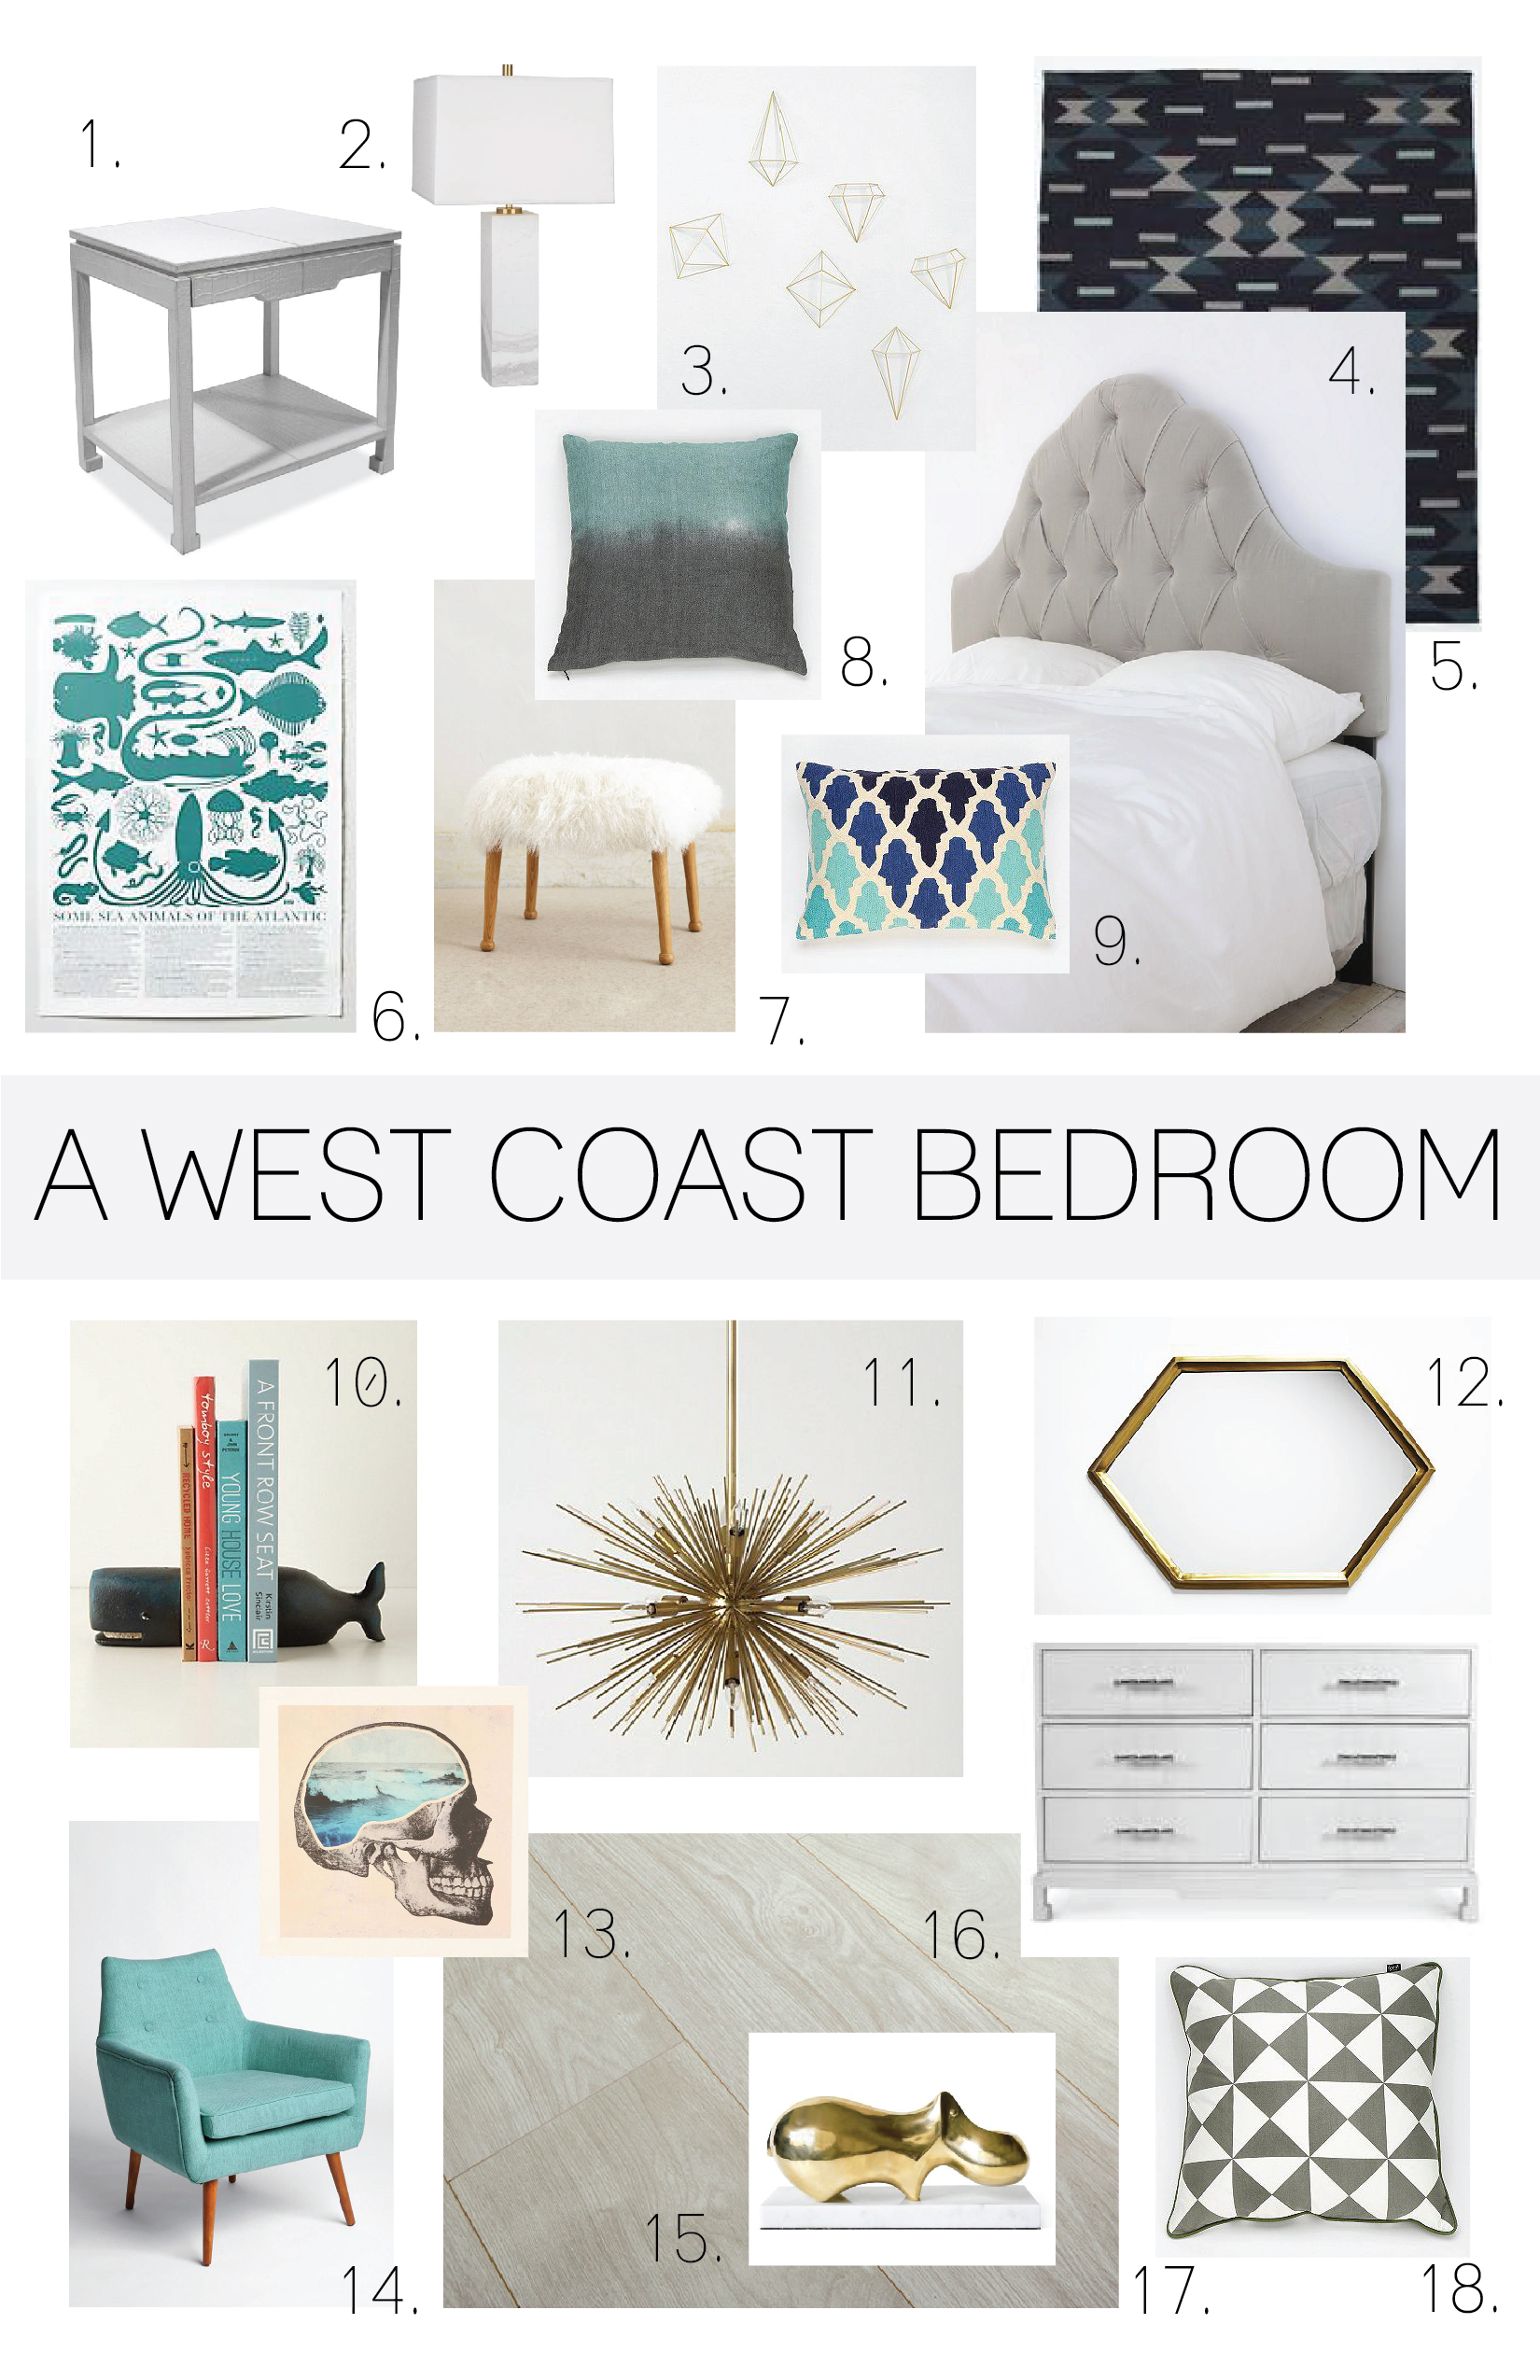 Room of the day -west coast bedroom-01.jpg